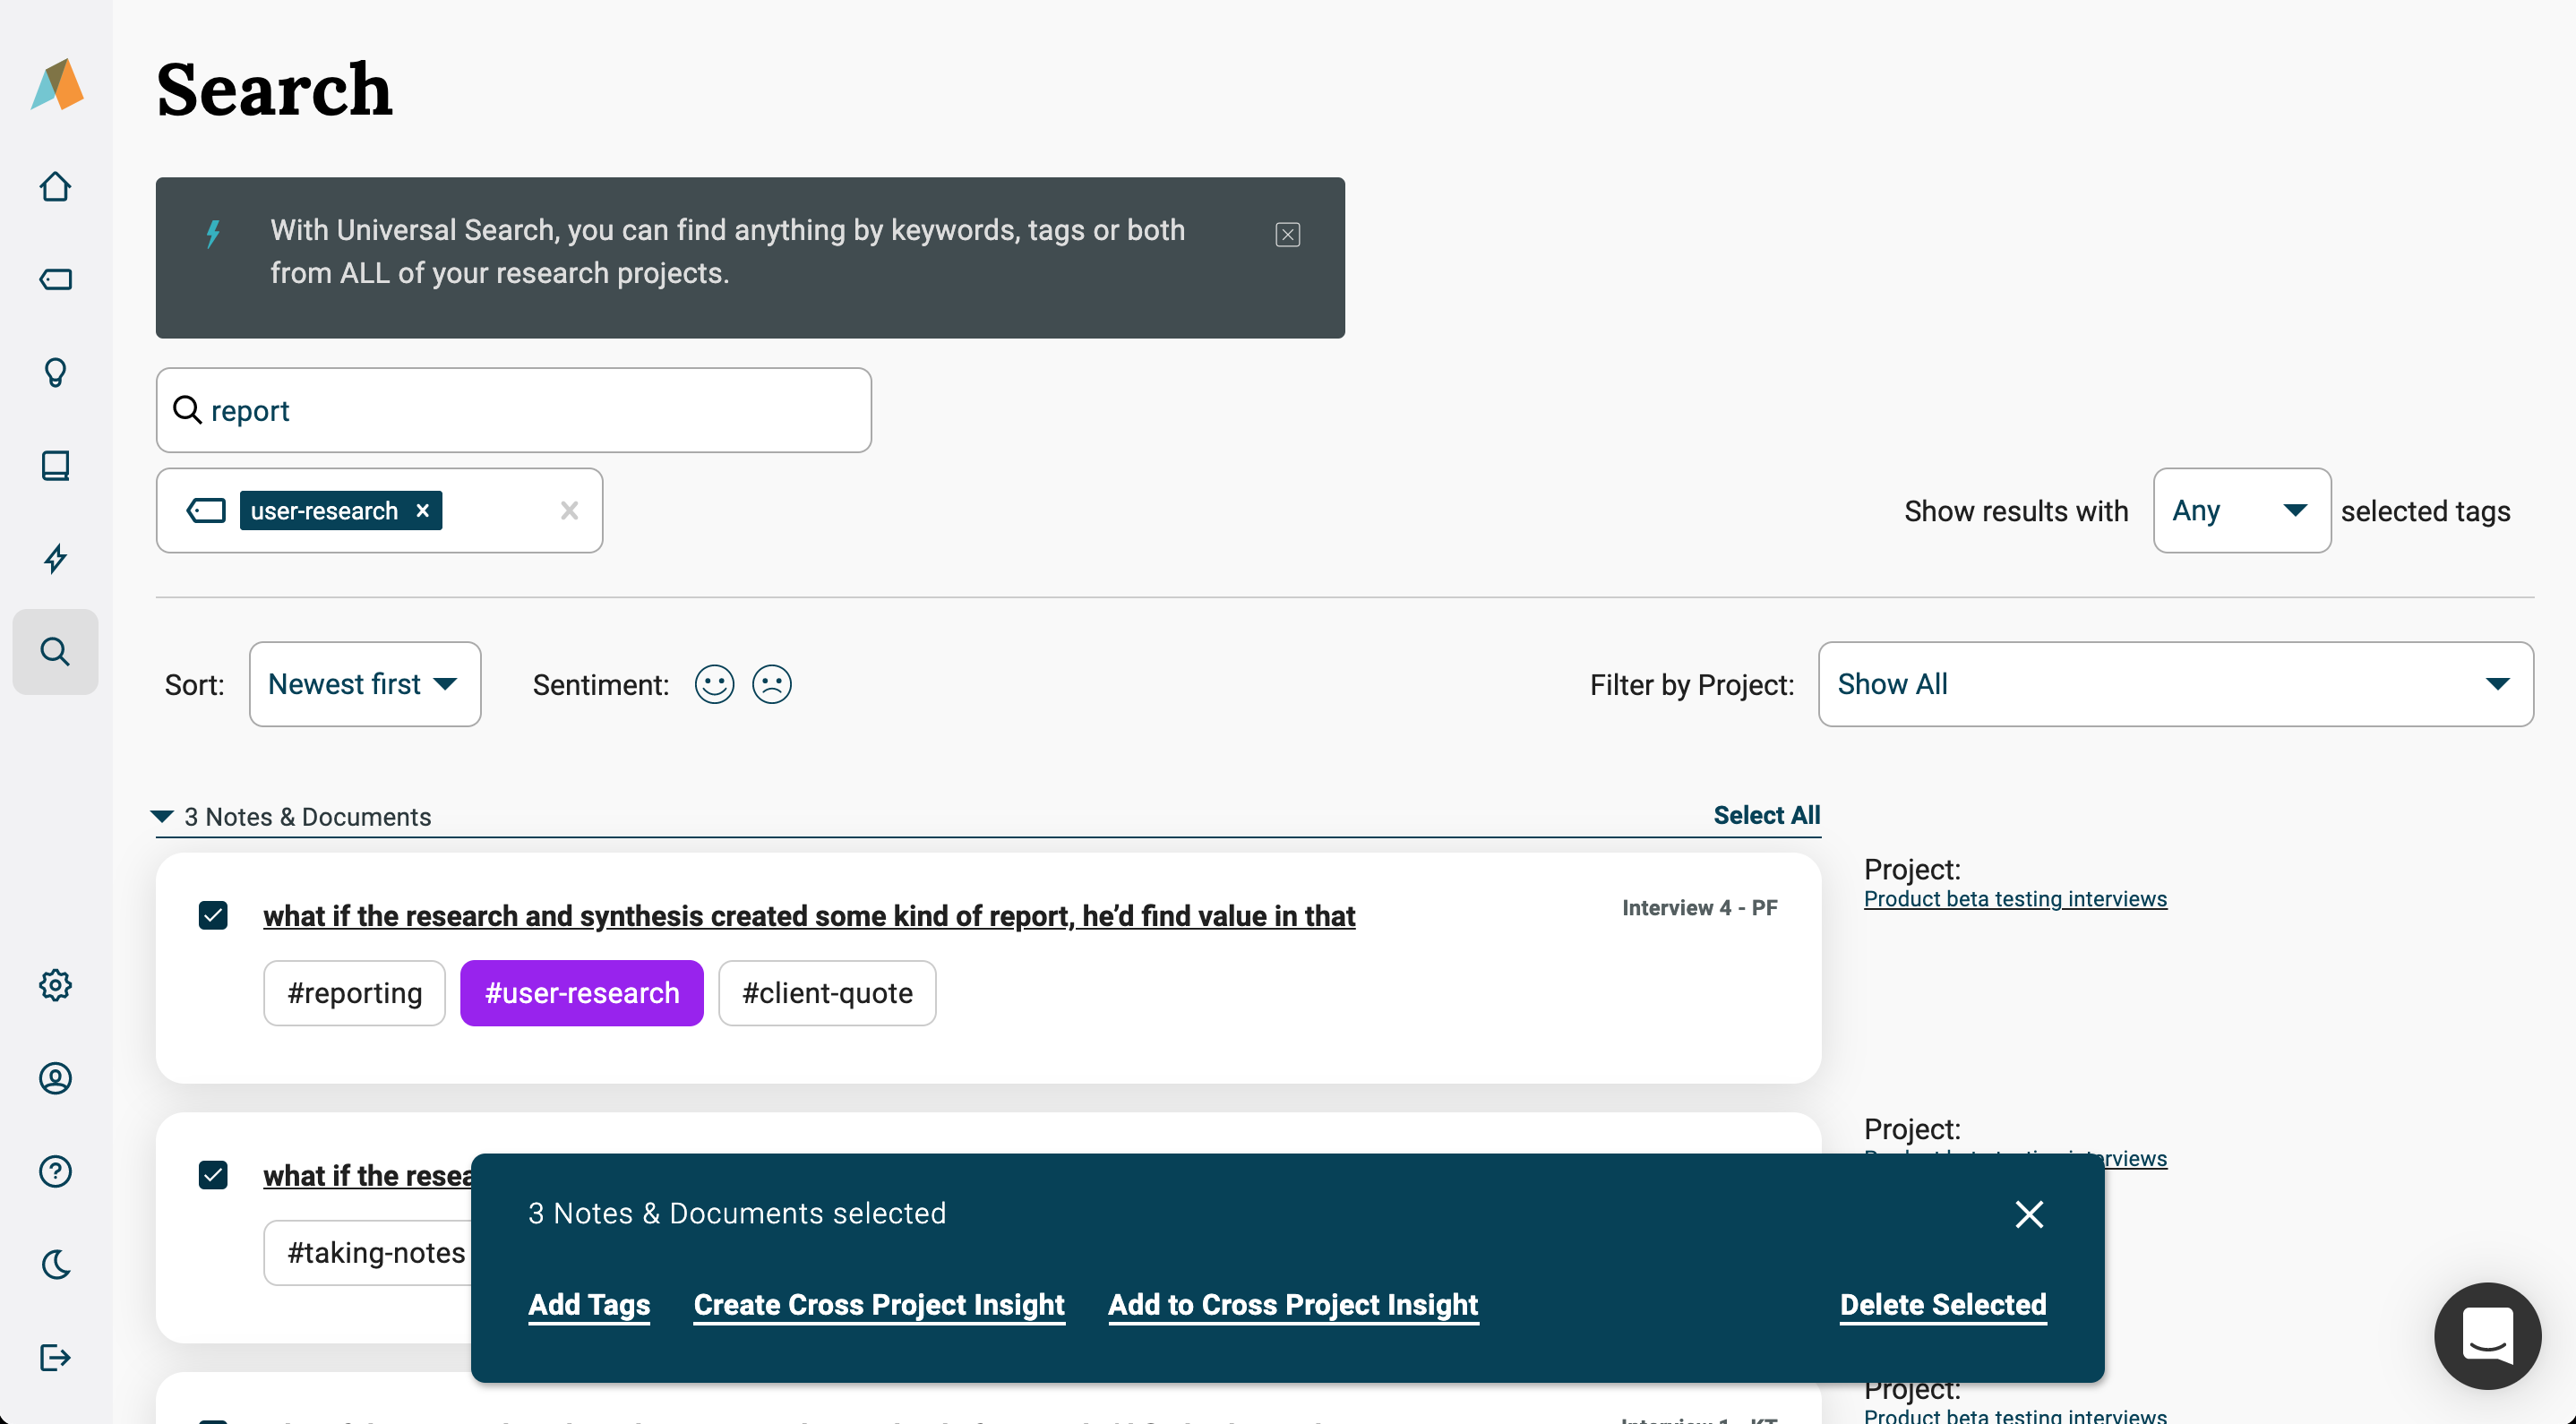 creating cross project insights from the universal search page